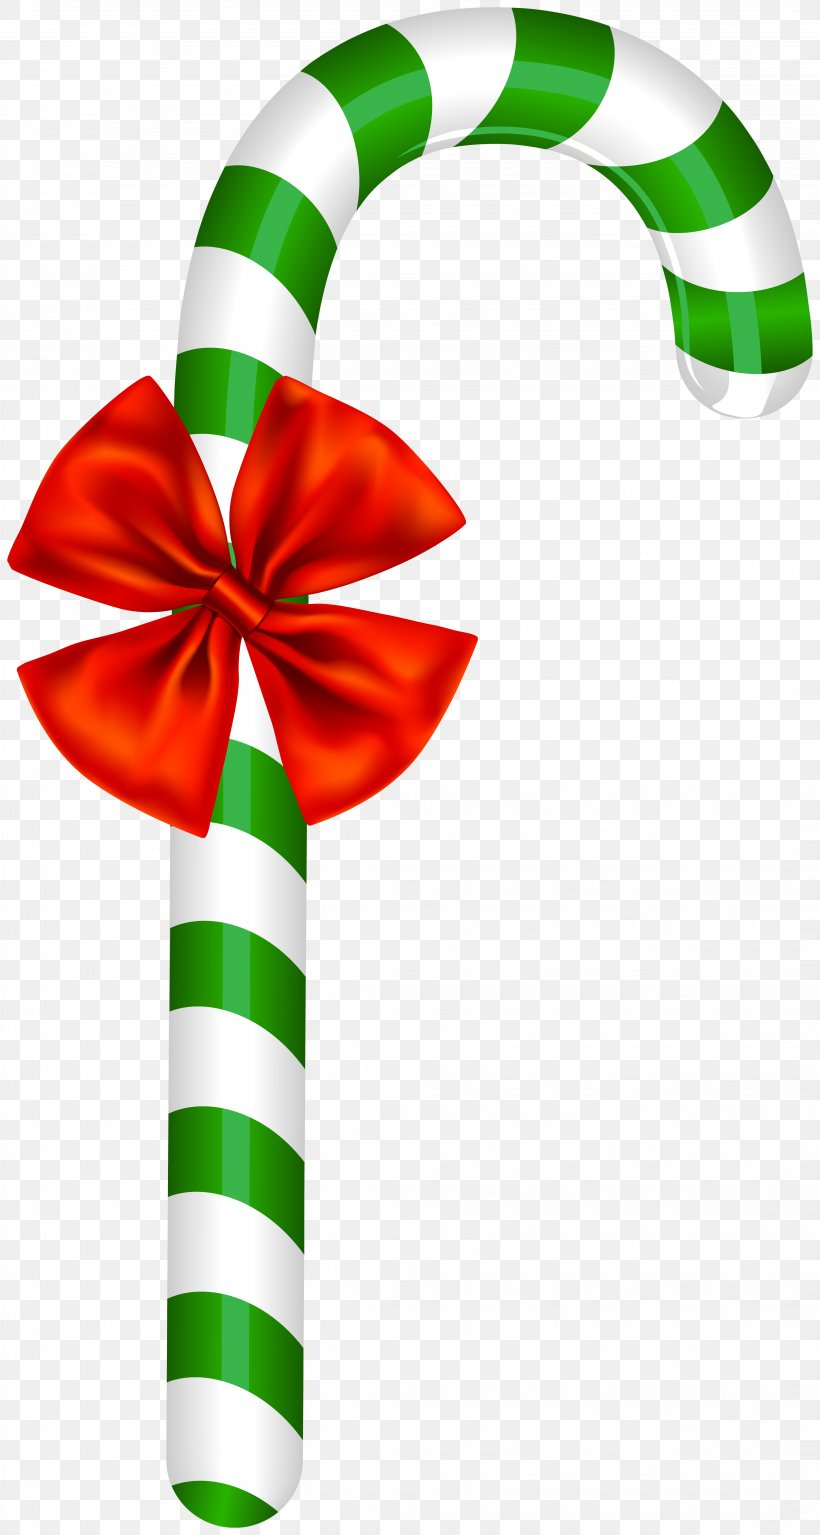 Candy Cane Christmas Day Image Clip Art, PNG, 4271x8000px.